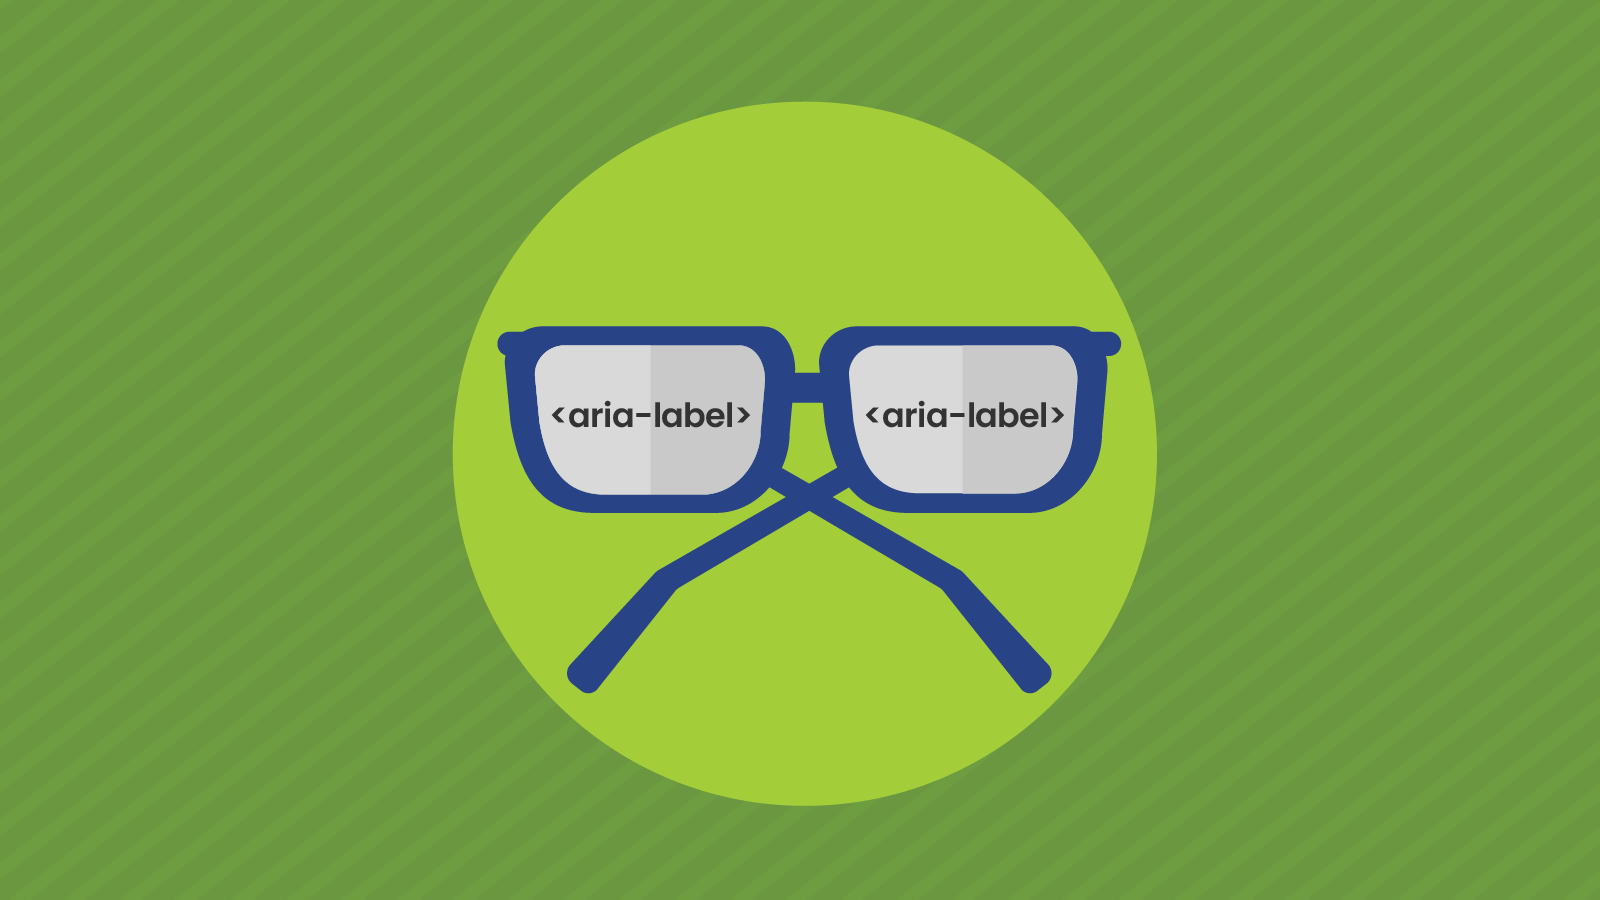 Spectacles showing aria-label in the frames